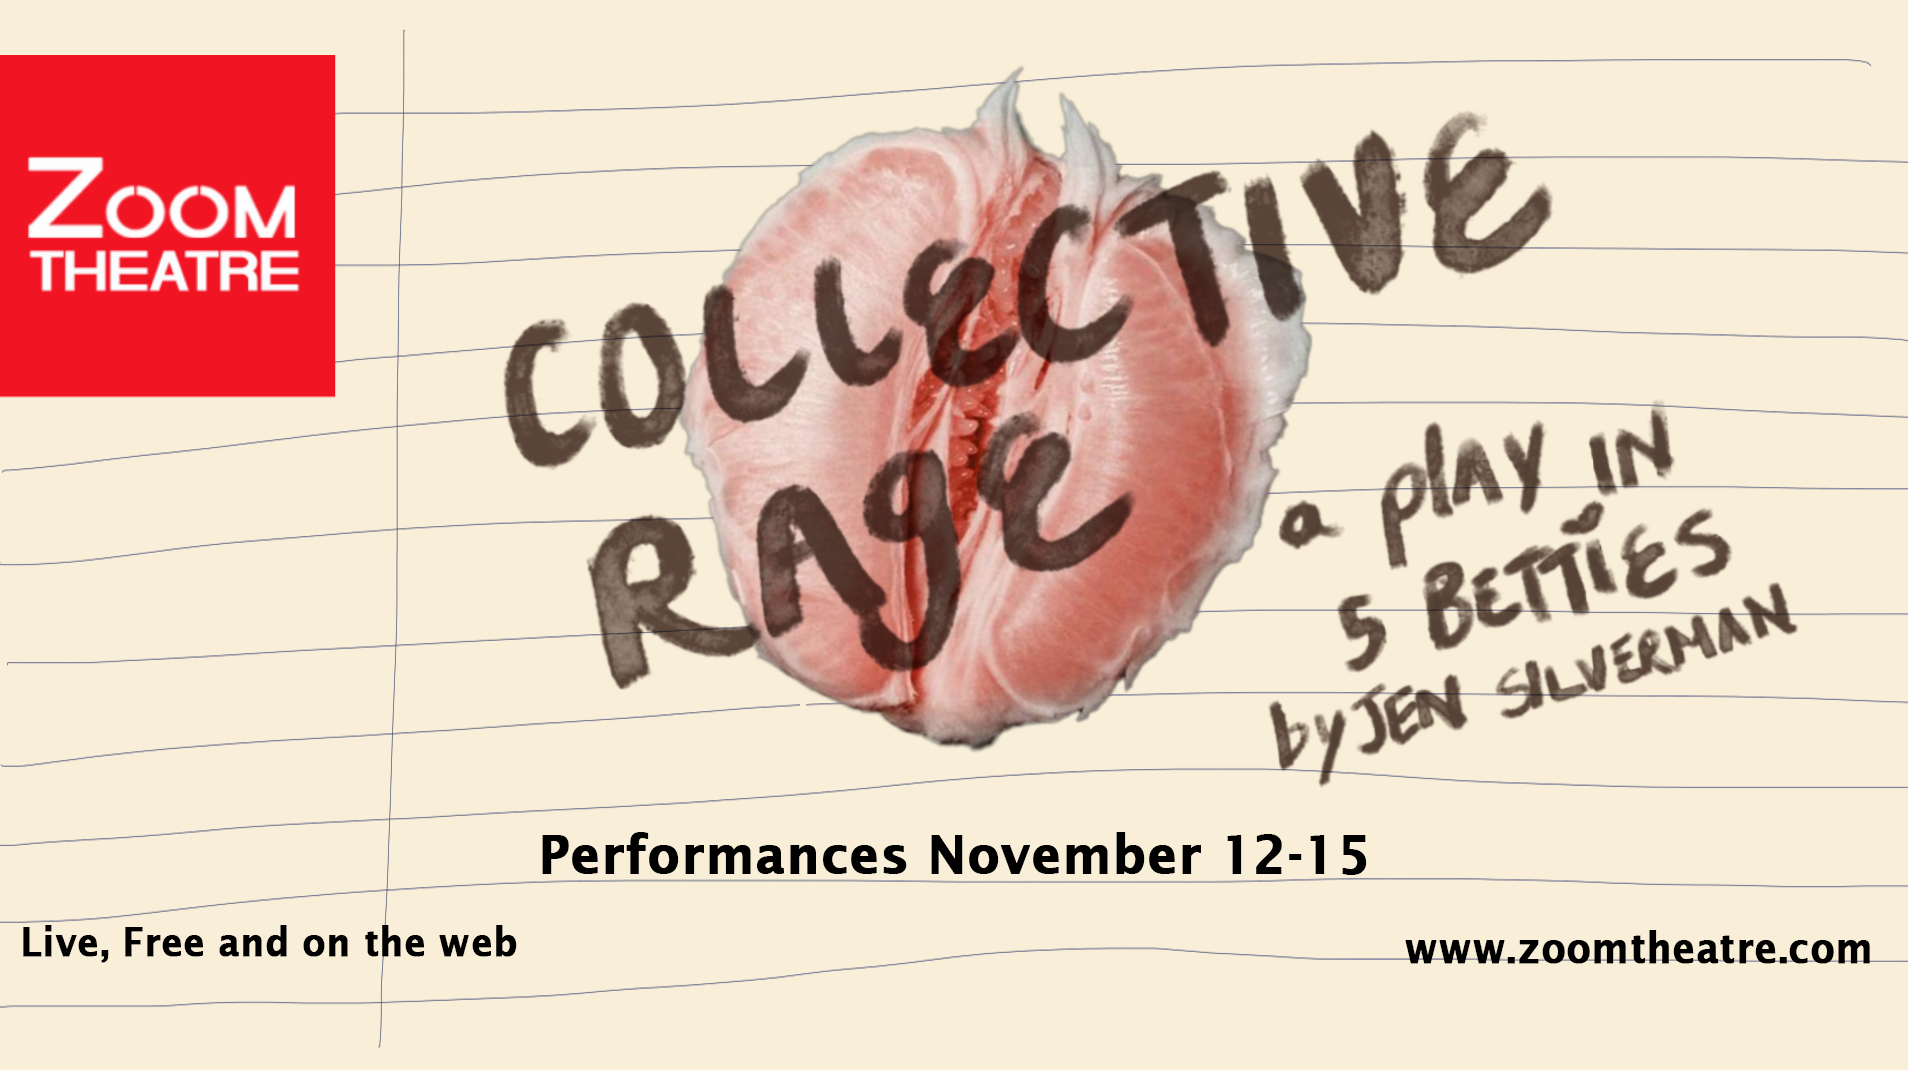 """""""COLLECTIVE RAGE"""": A Play in 5 Betties - Online"""